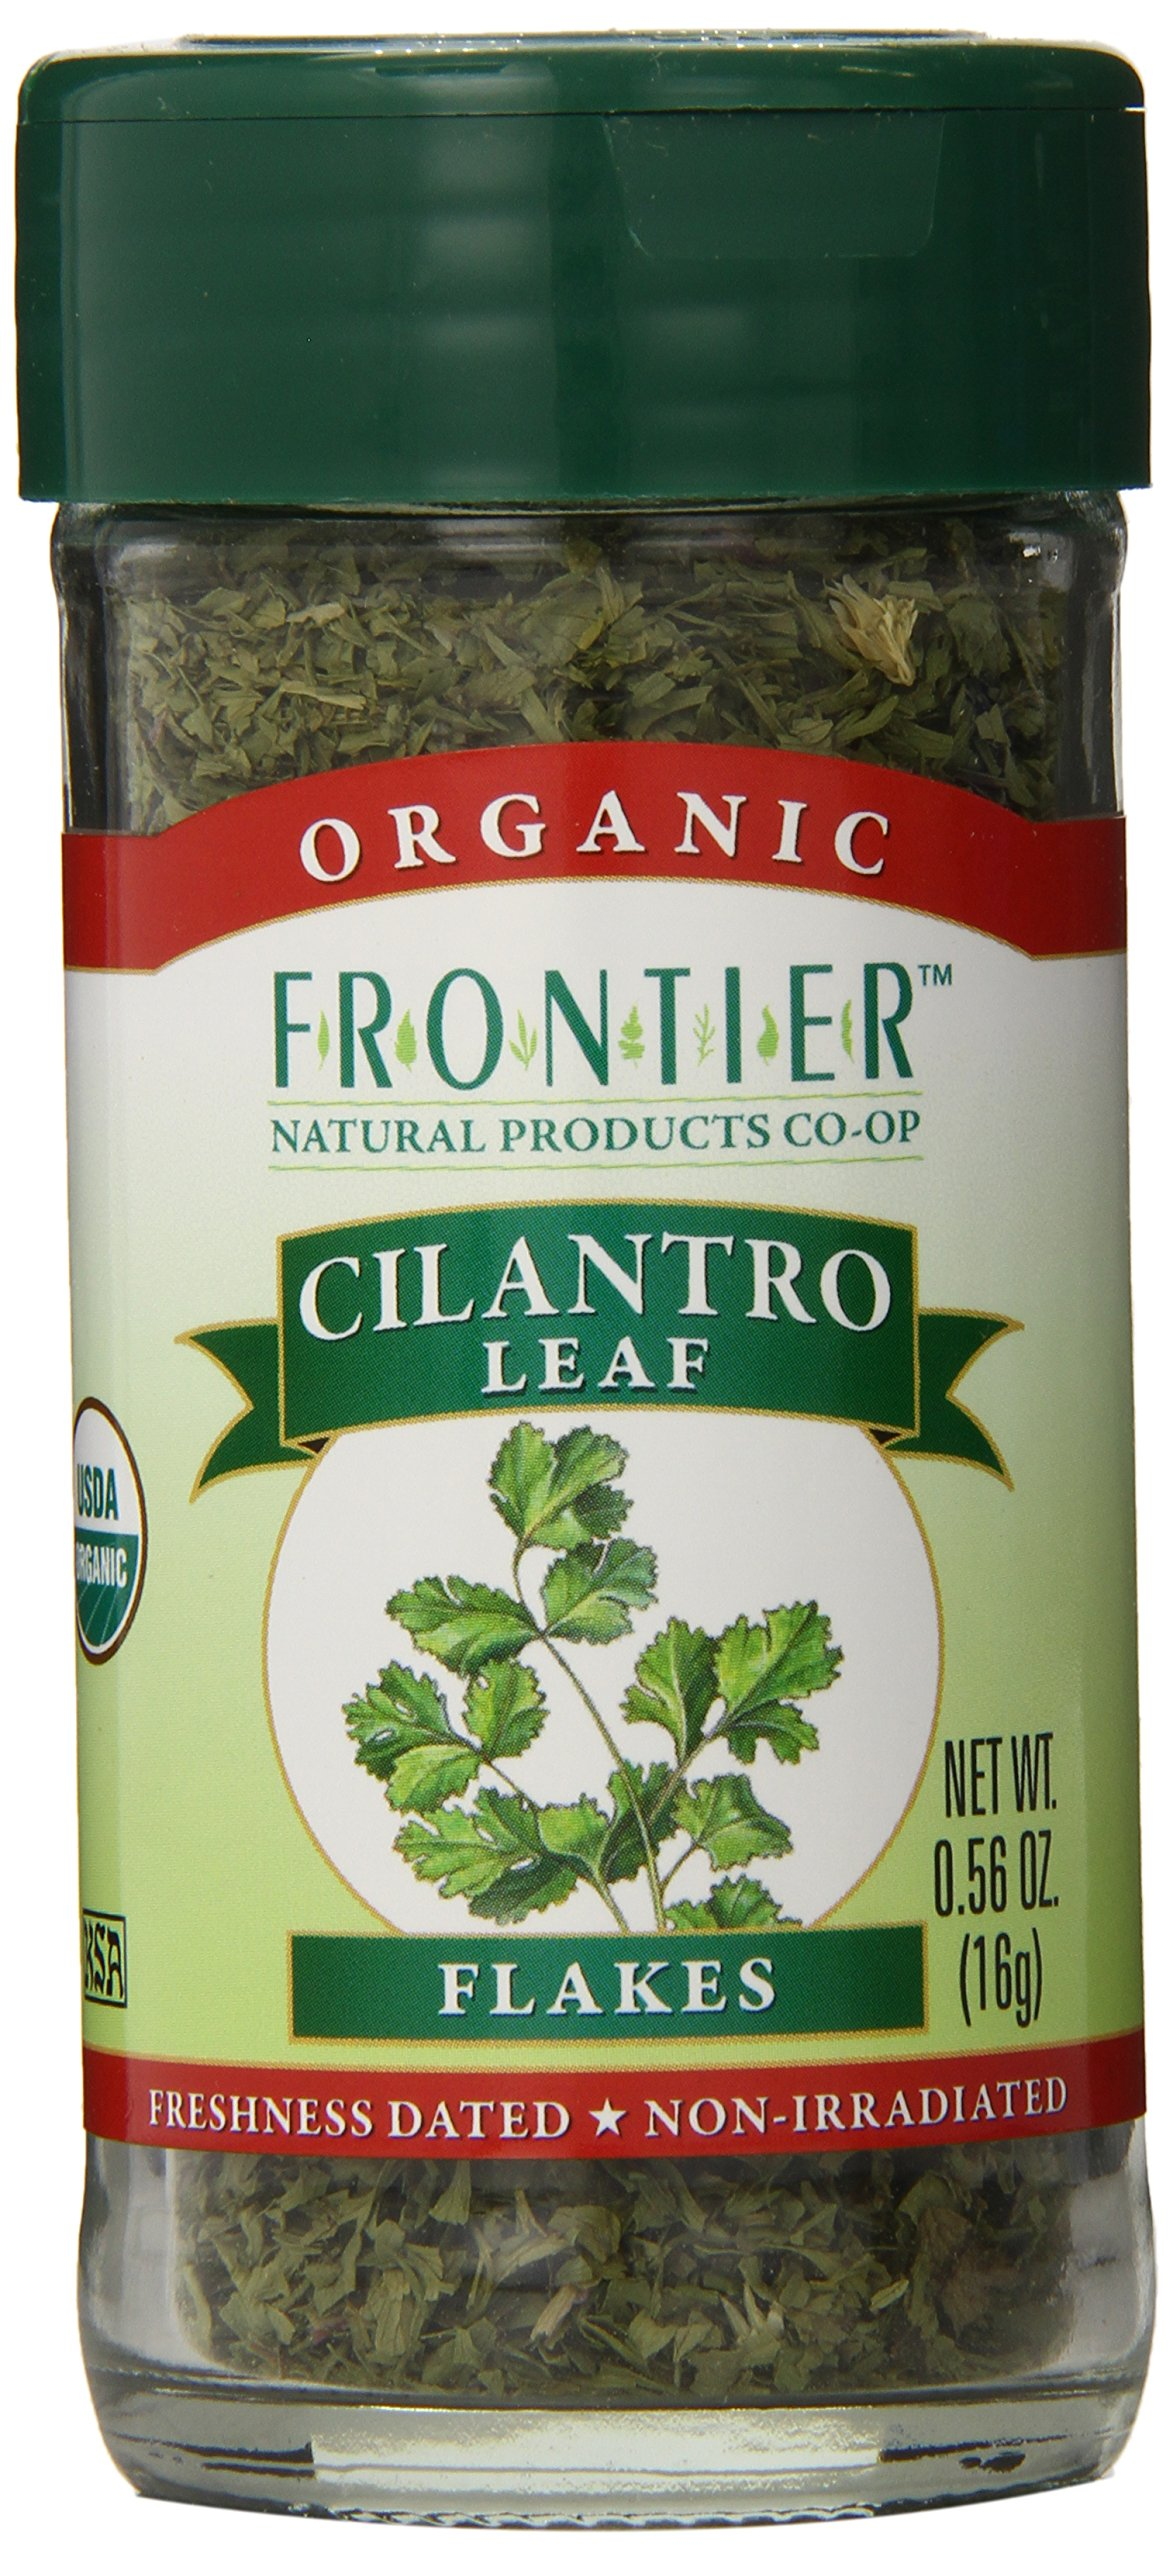 Frontier Organic Cilantro Leaf Flakes, 0.56-Ounce Container (Pack of 6)